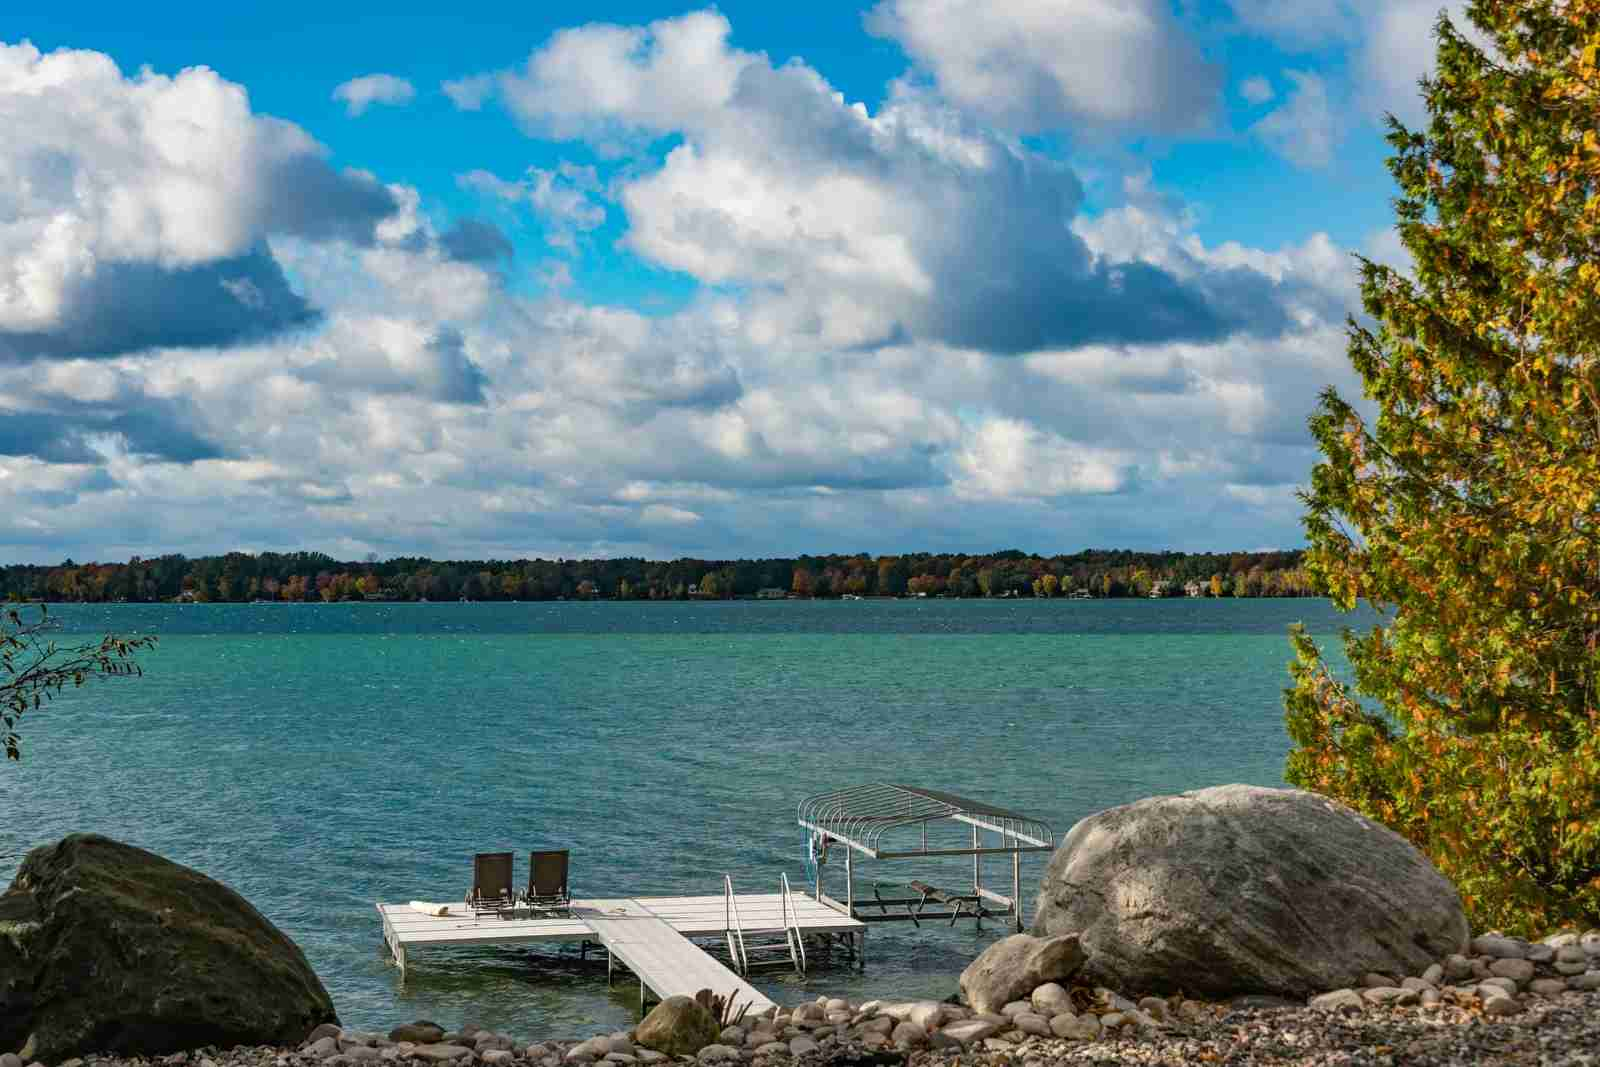 Torch Lake, Michigan. (Photo by RiverNorthPhotography/Getty Images)